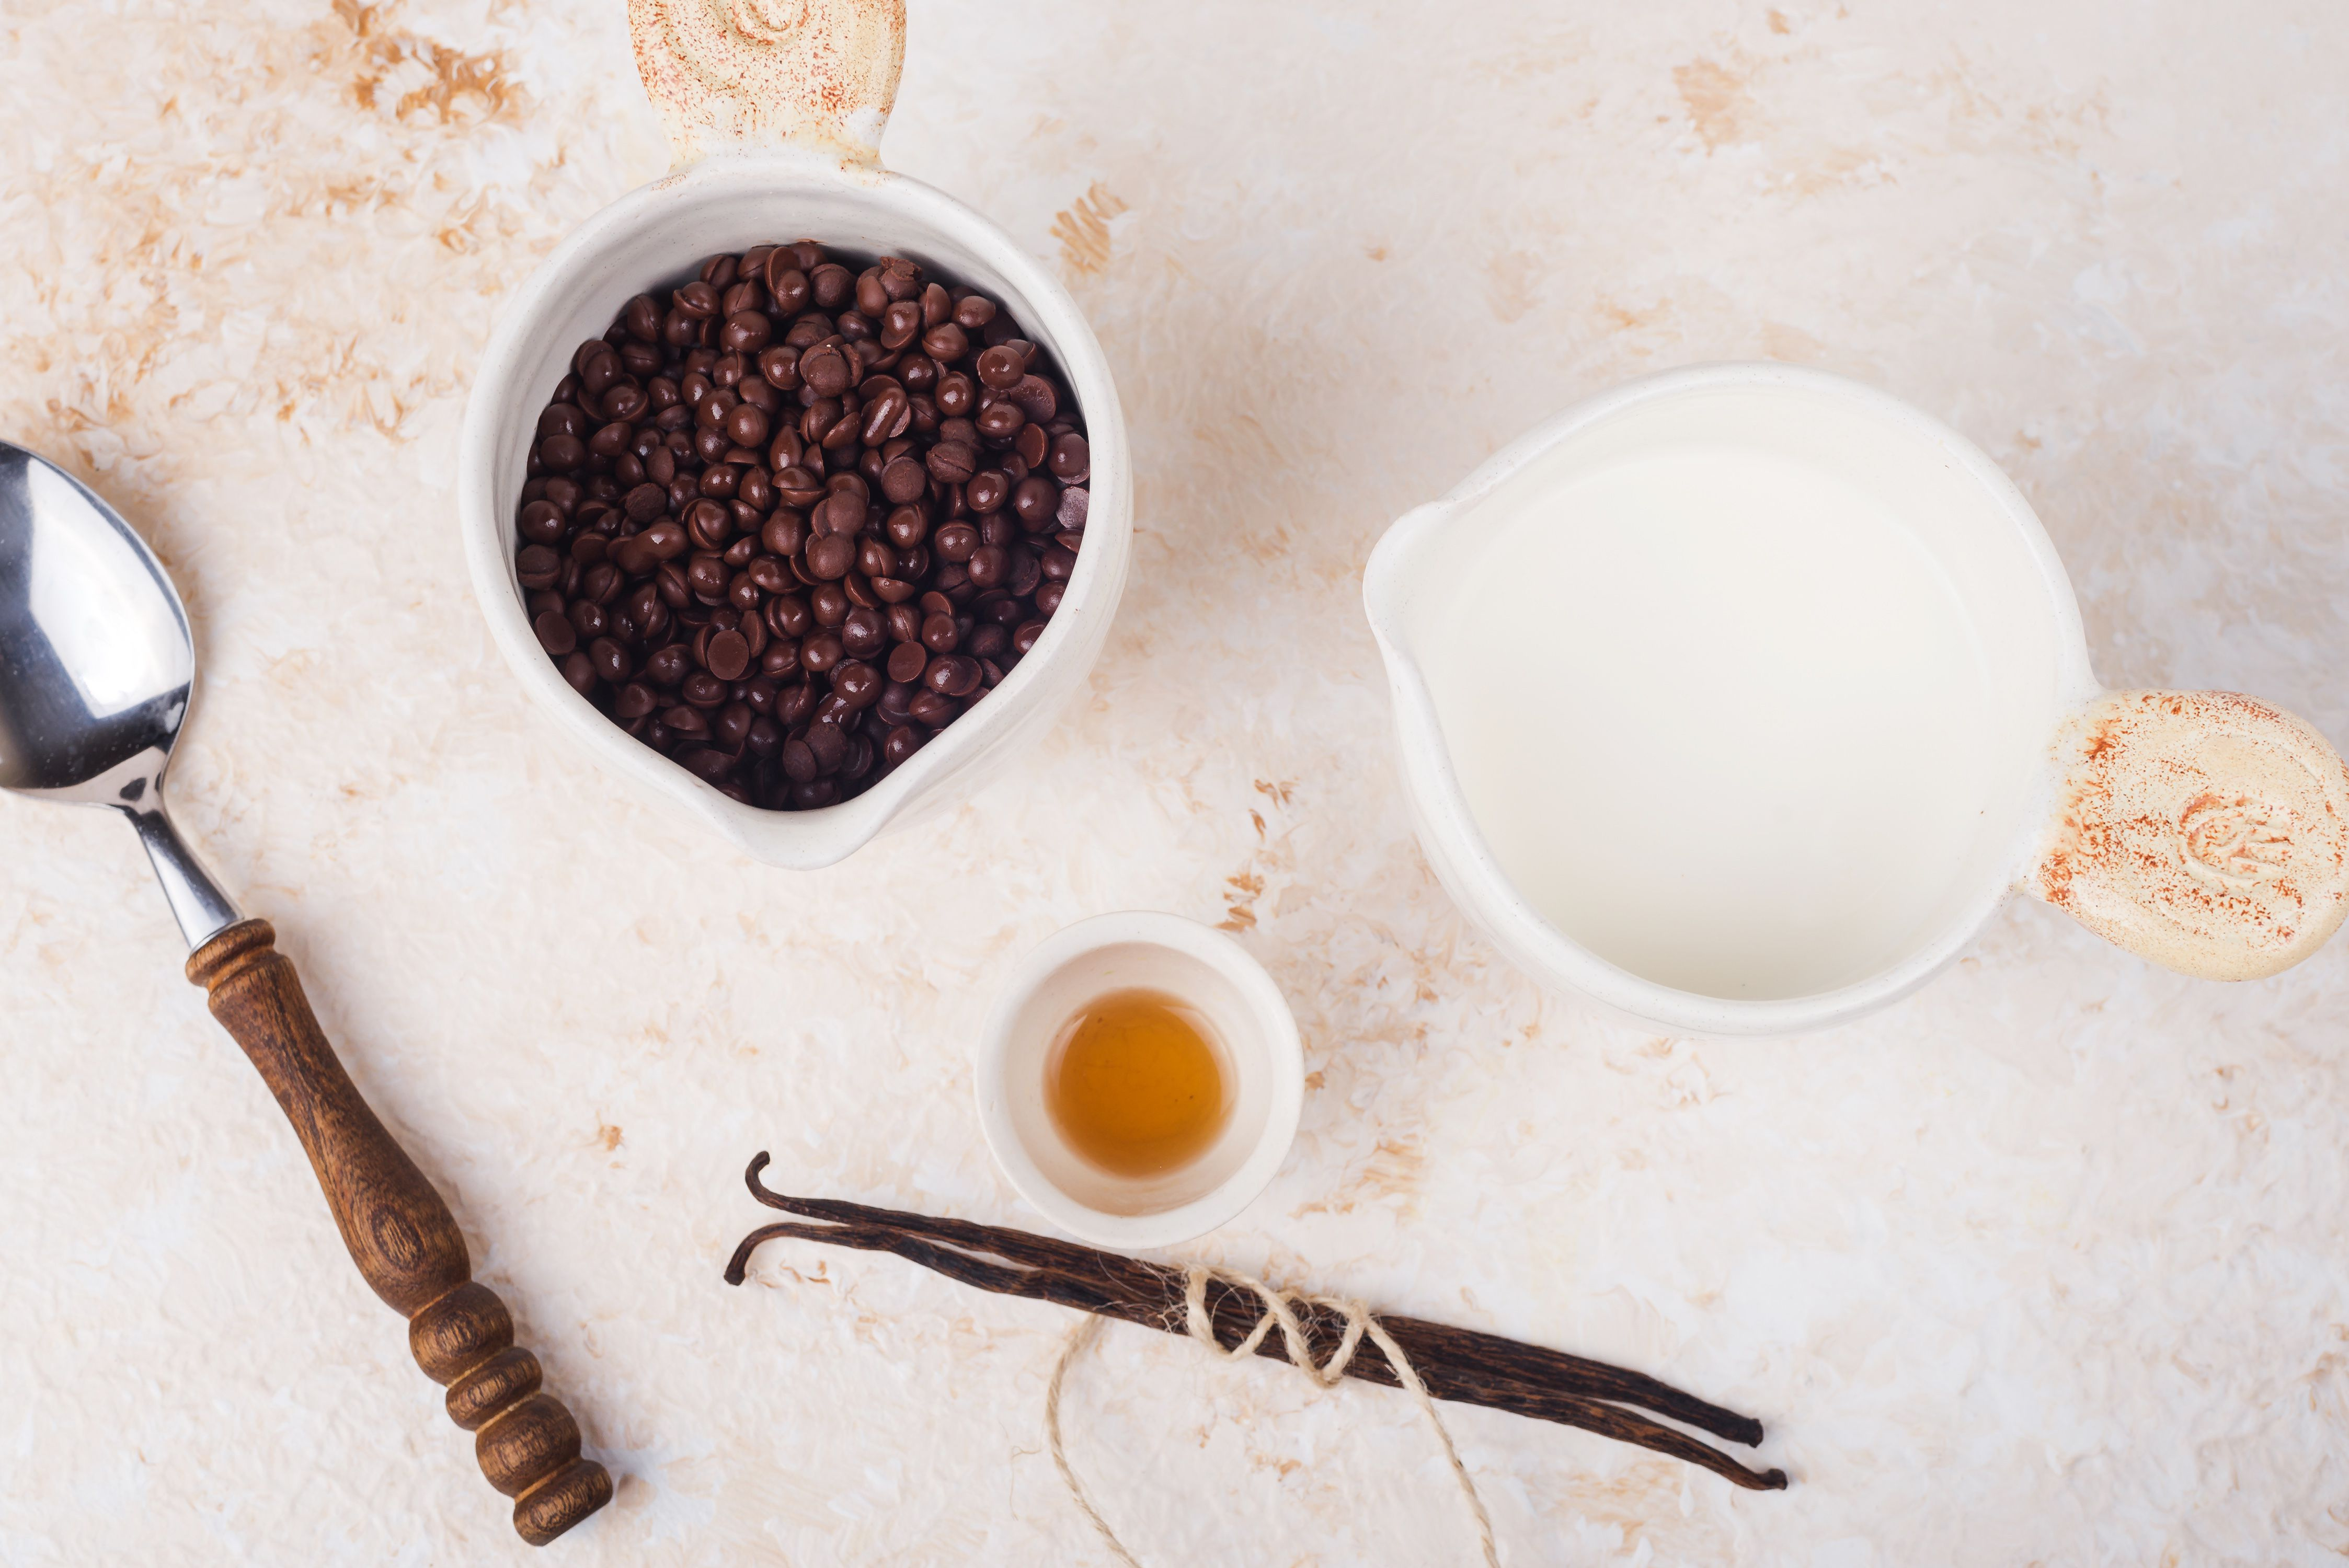 Ingredients for chocolate sauce